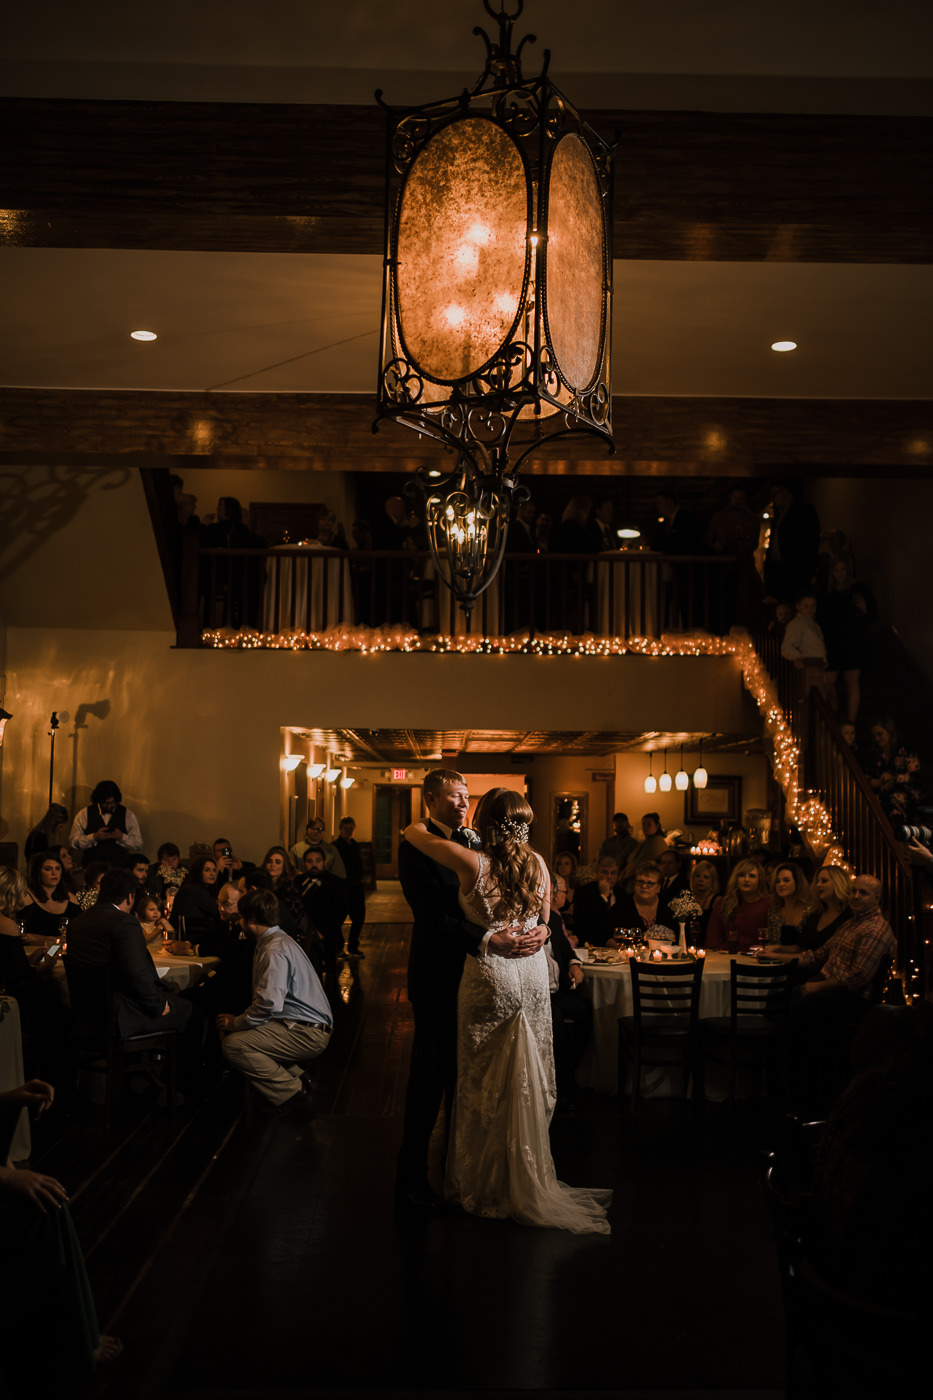 rogers.arkansas.weddingphotos.©2018mileswittboyer-34.jpg